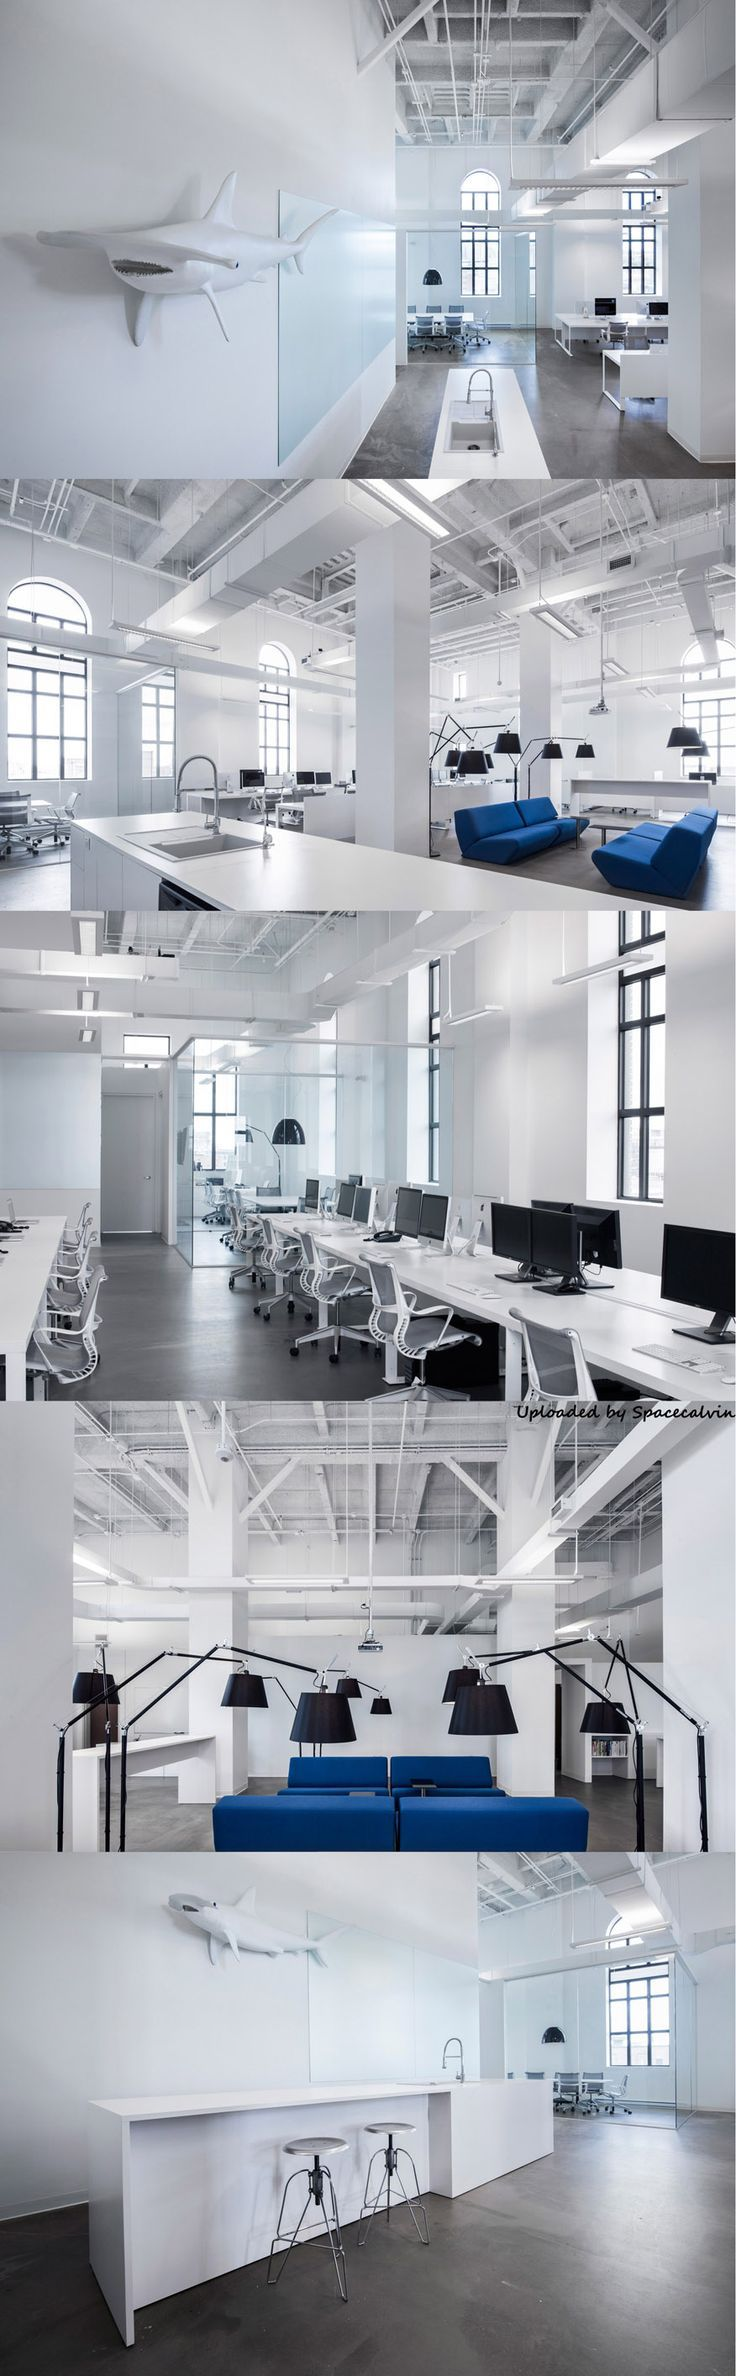 Blue communications office space by jean guy chabauty and - Interior design office space ...